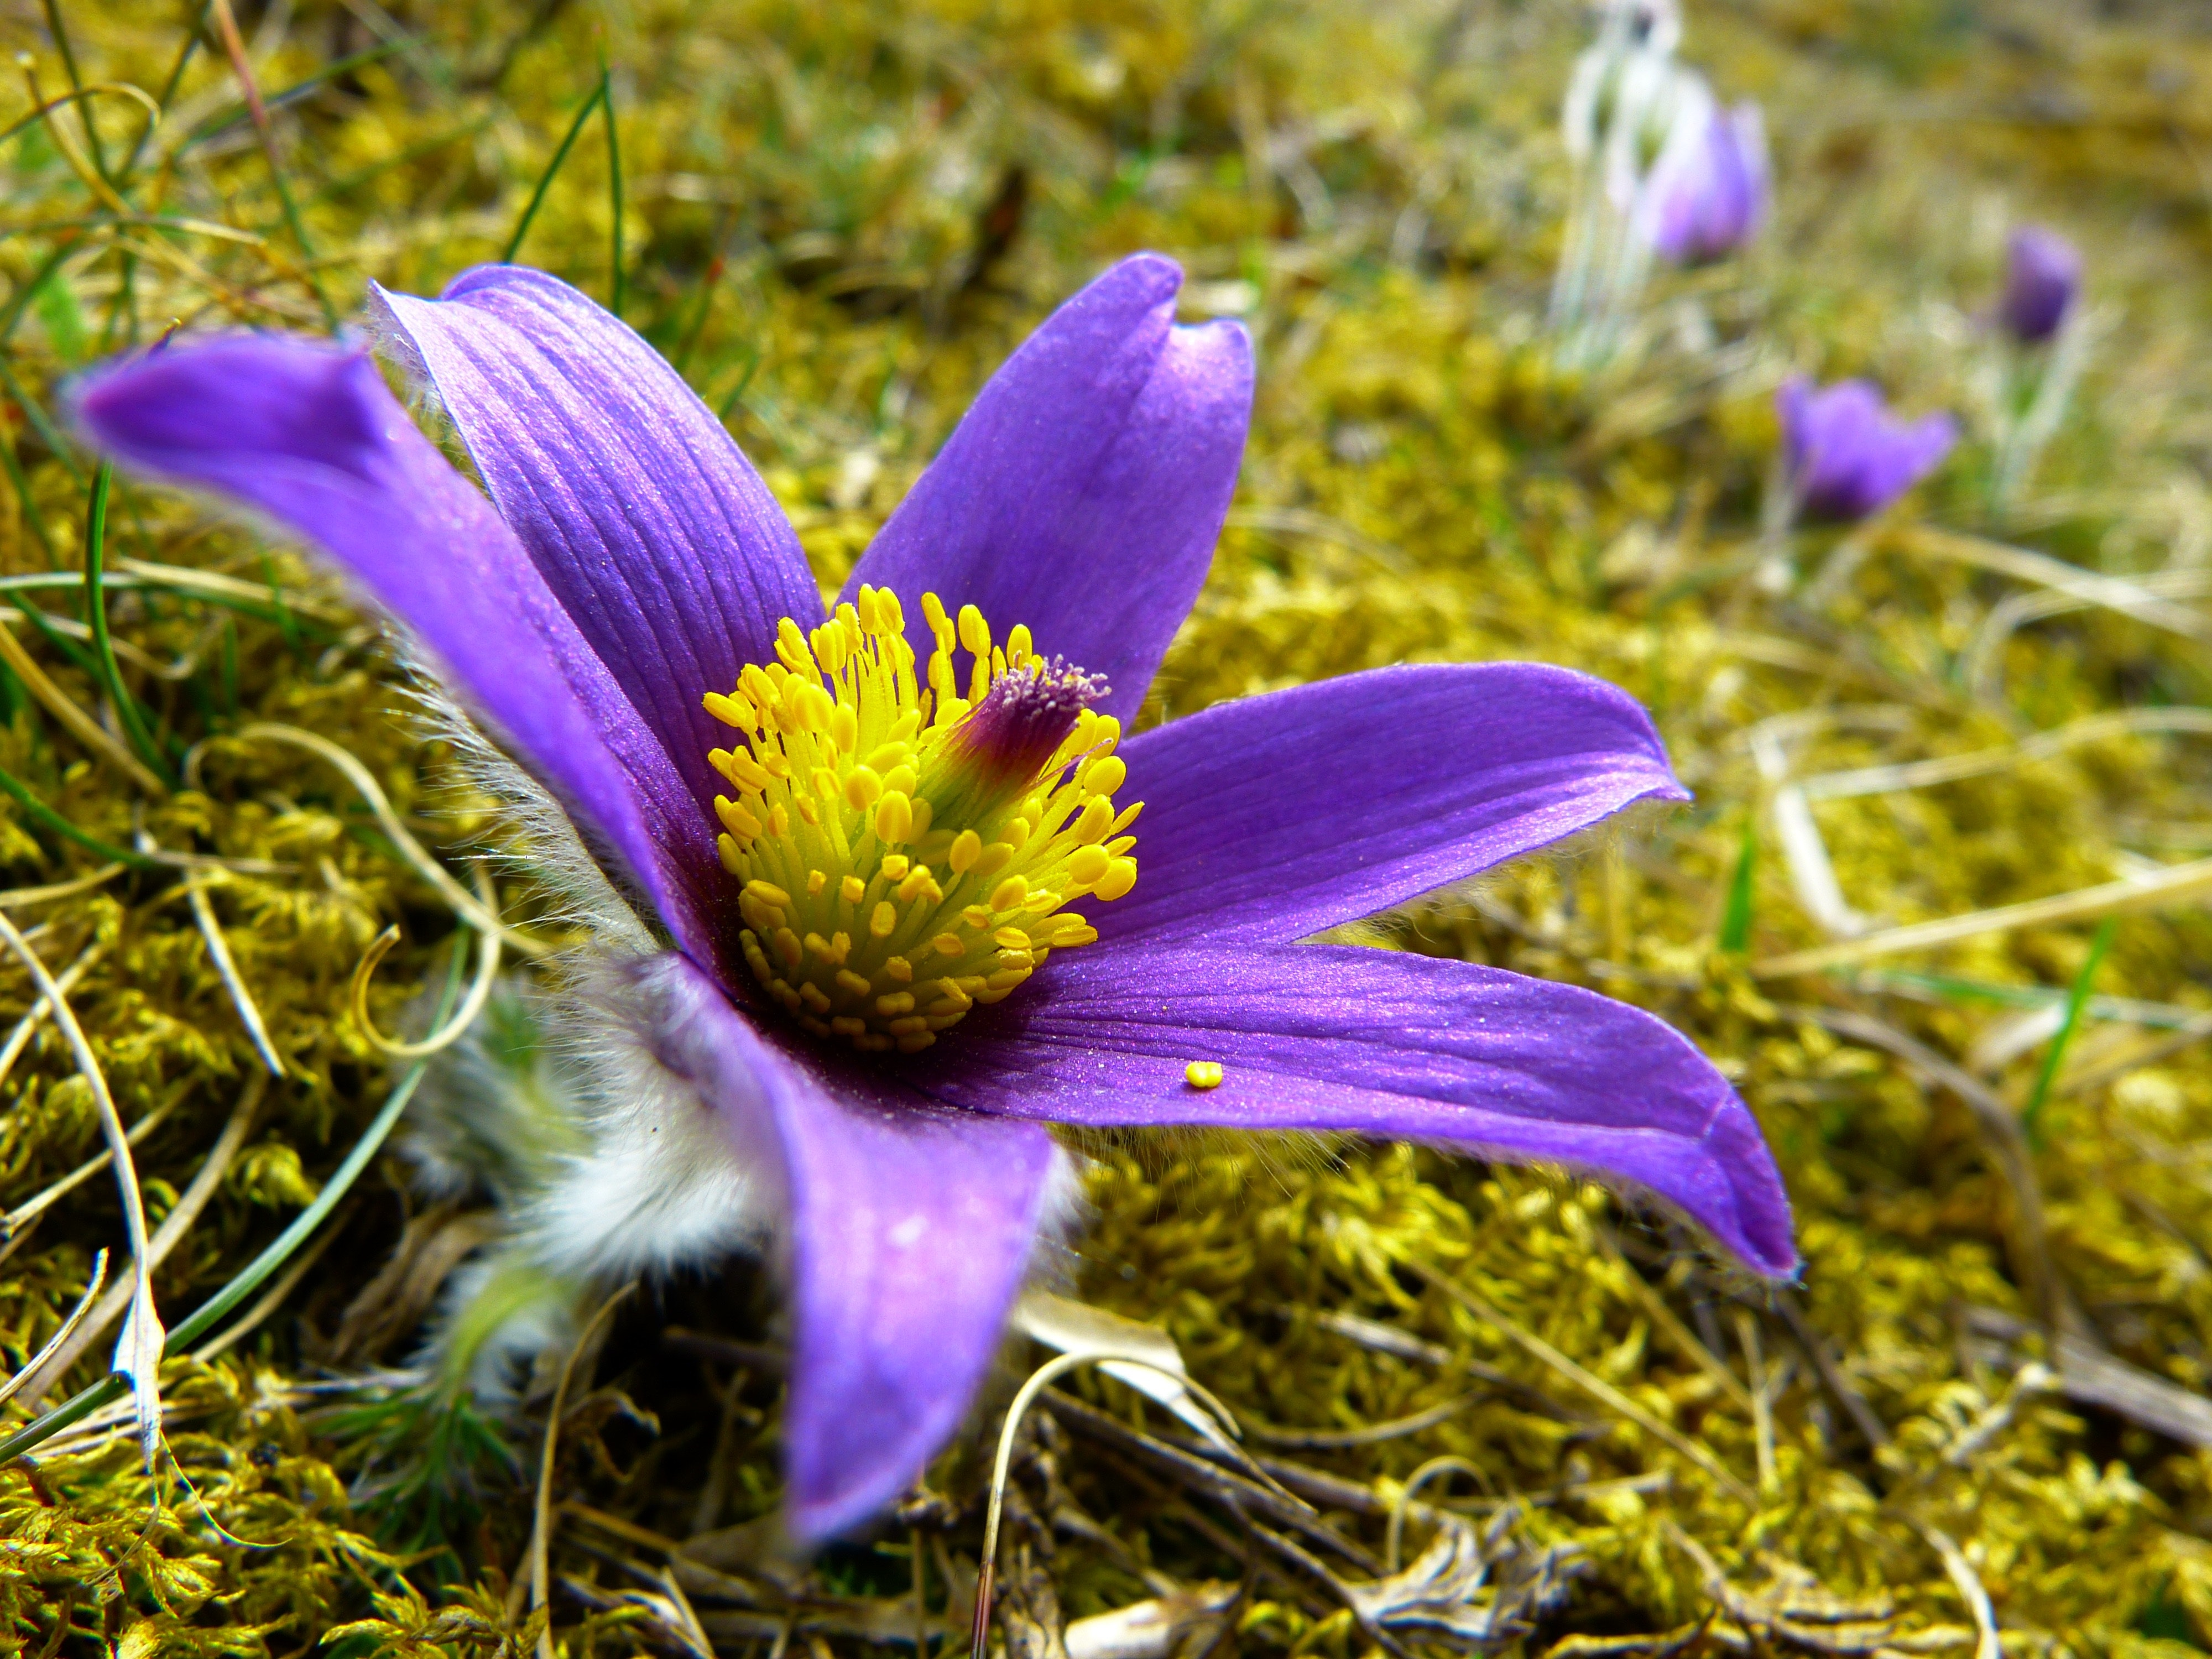 Purple and Yellow Flower, Bloom, Blossom, Blur, Flora, HQ Photo